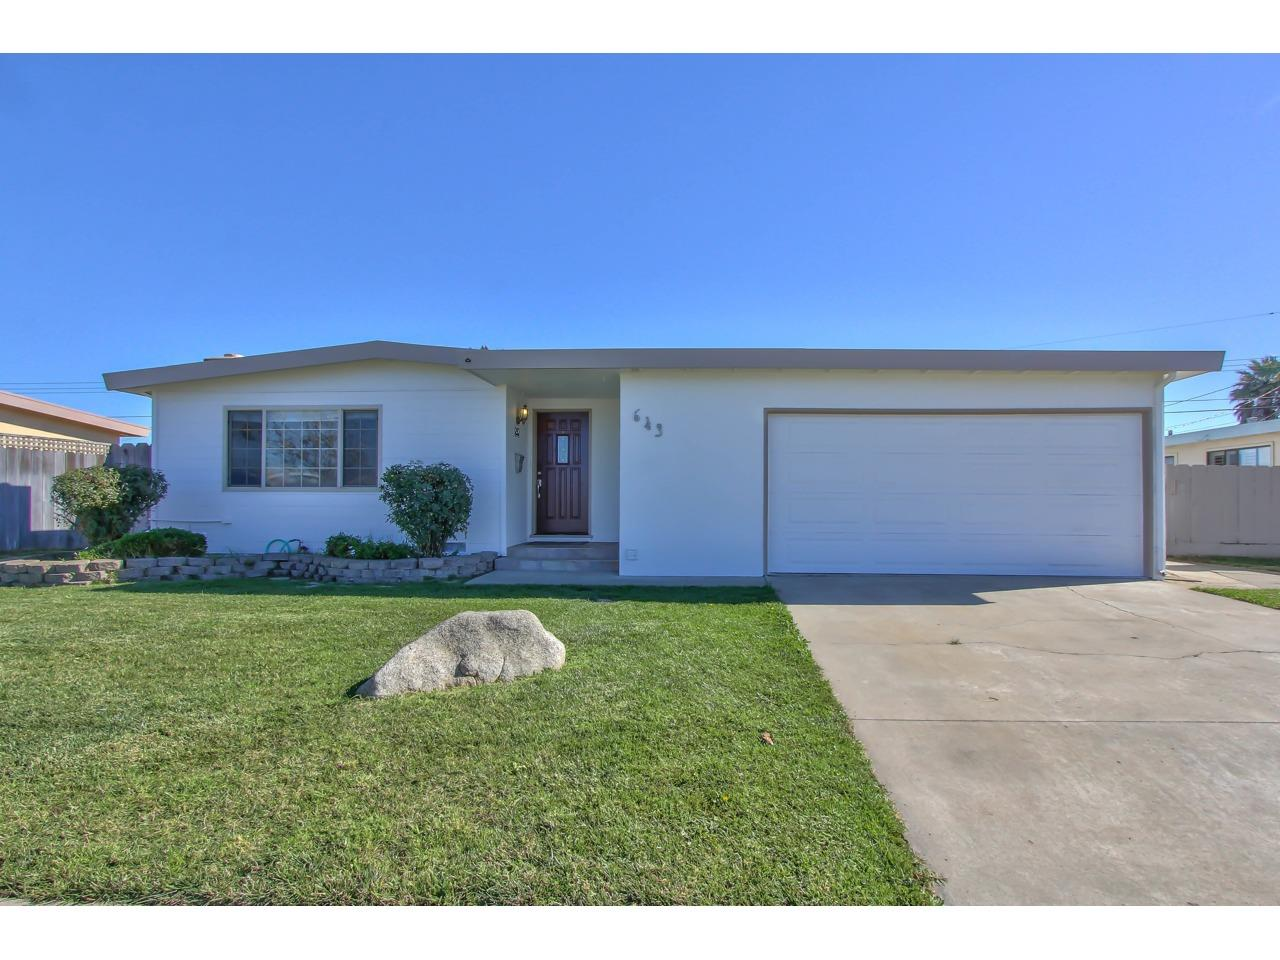 Detail Gallery Image 1 of 15 For 643 University Ave, Salinas, CA, 93901 - 3 Beds | 2 Baths